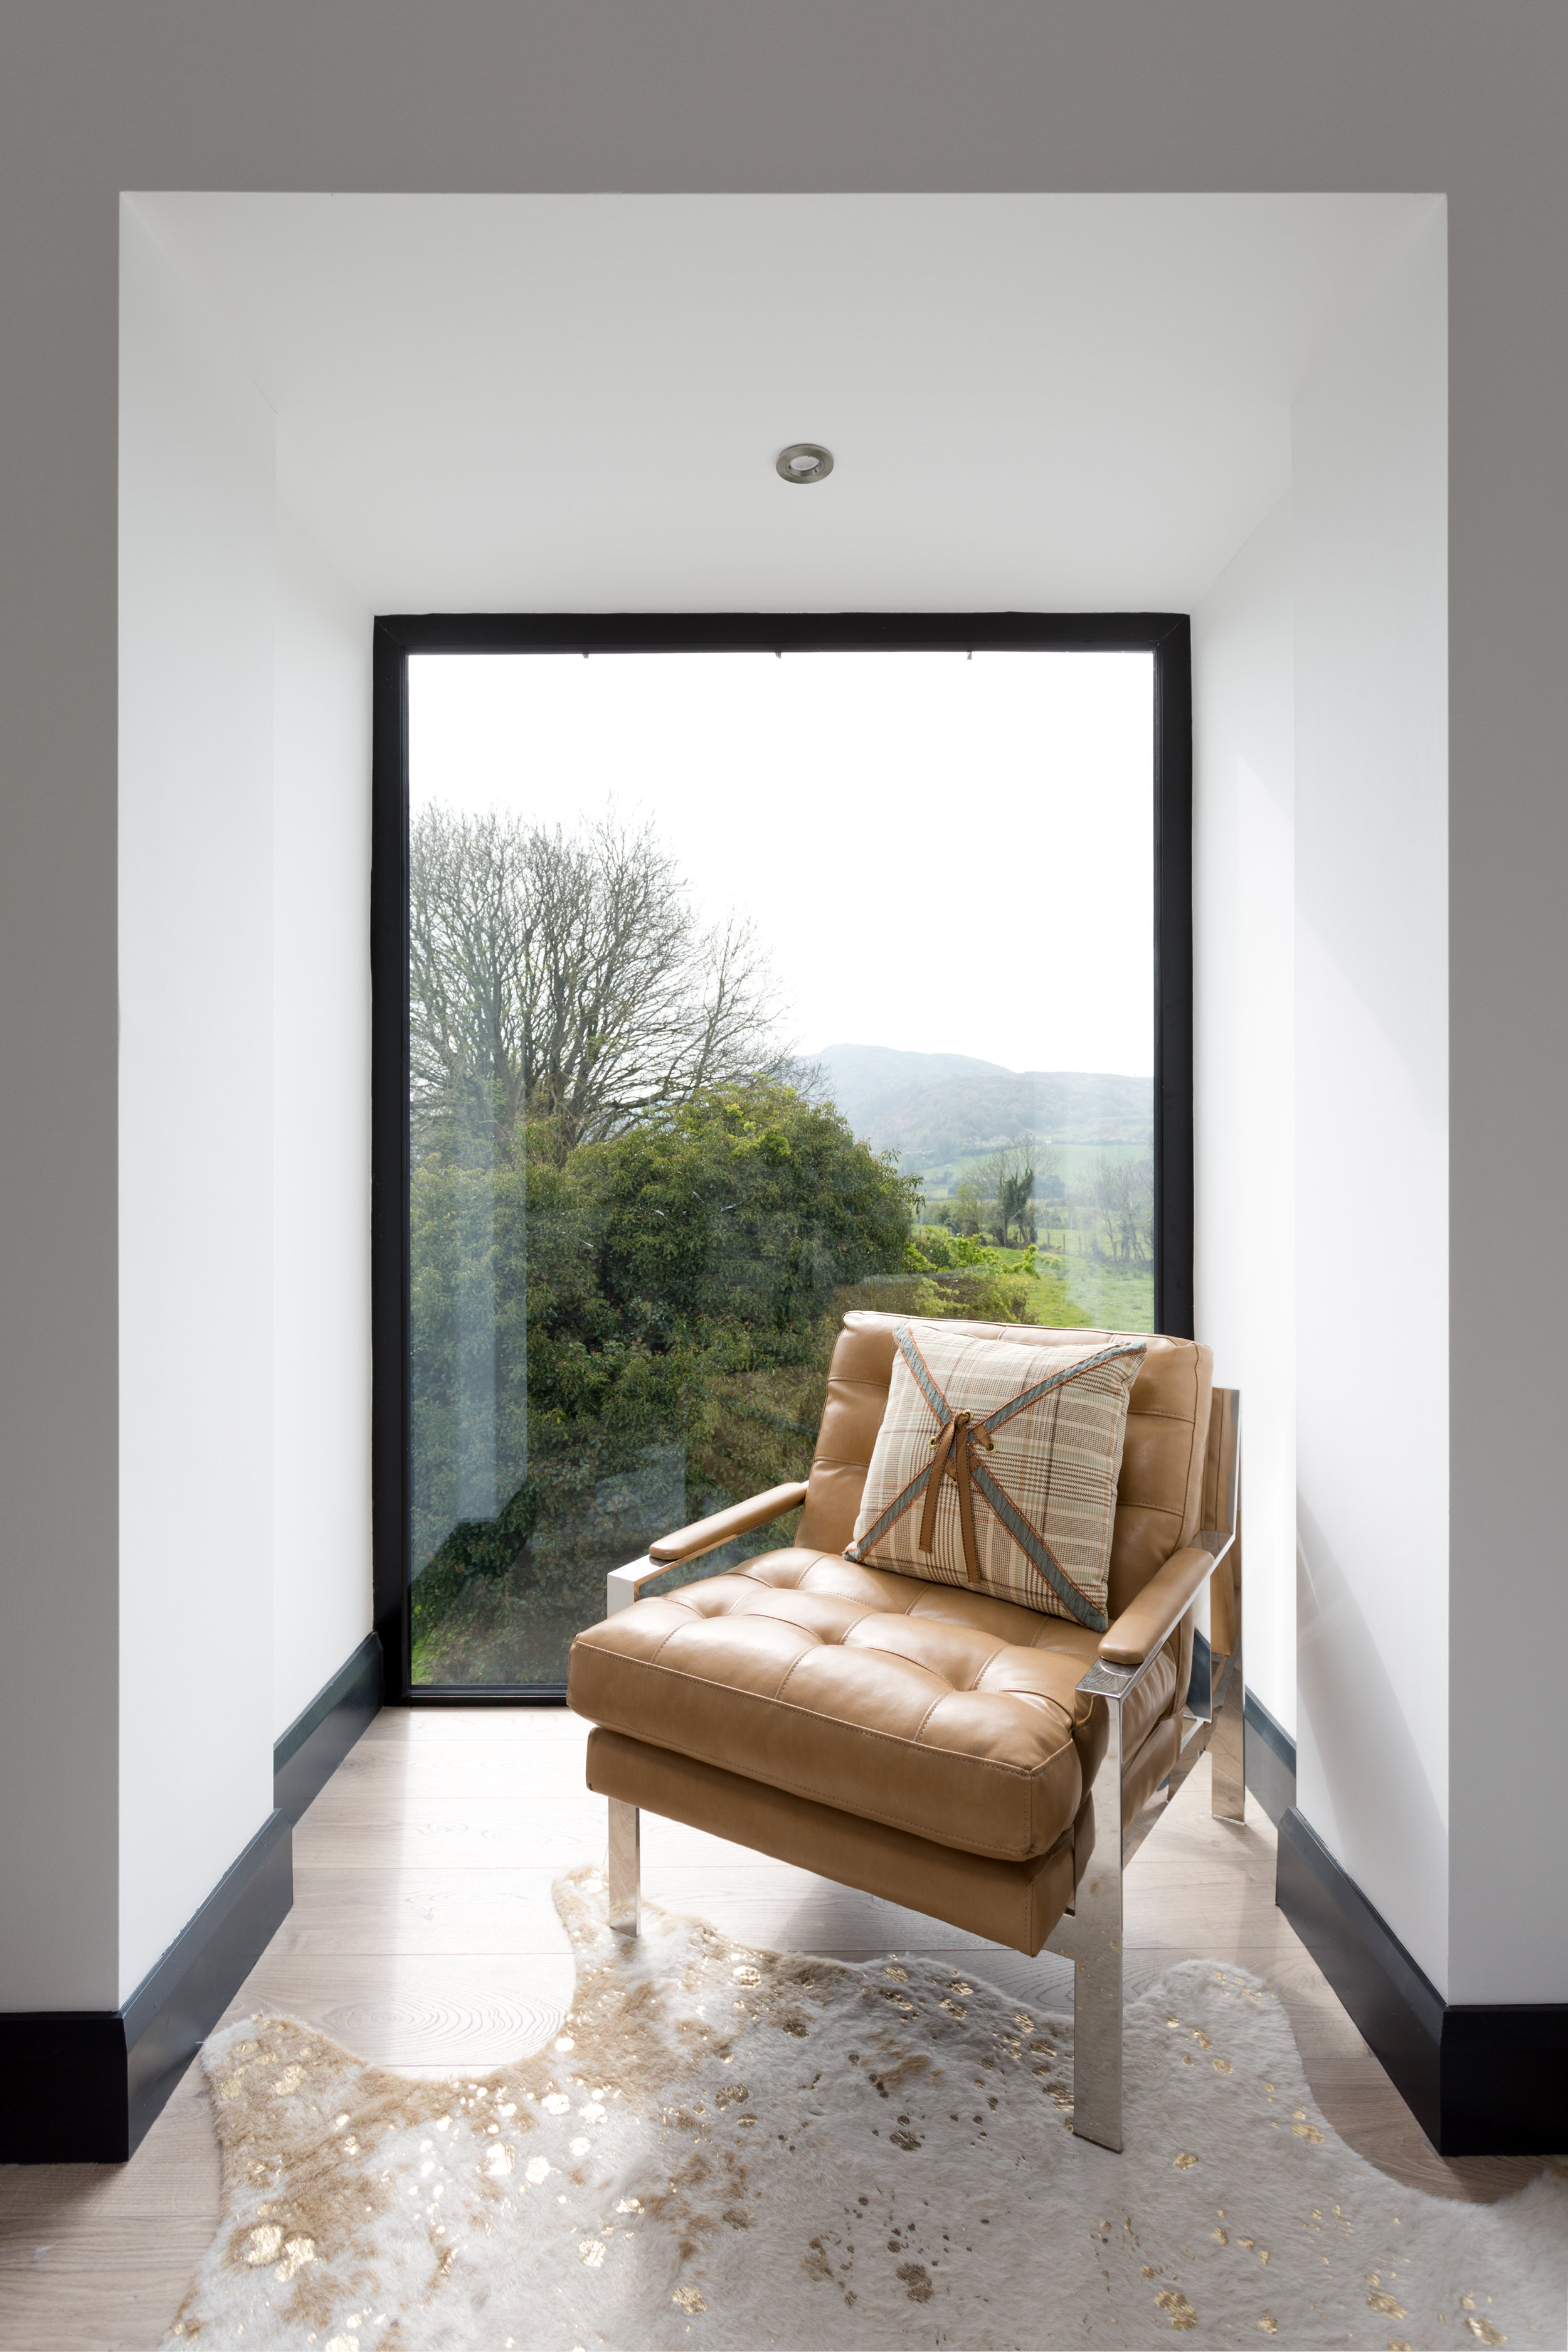 This bedroom window creates a nook to sit and enjoy the view.